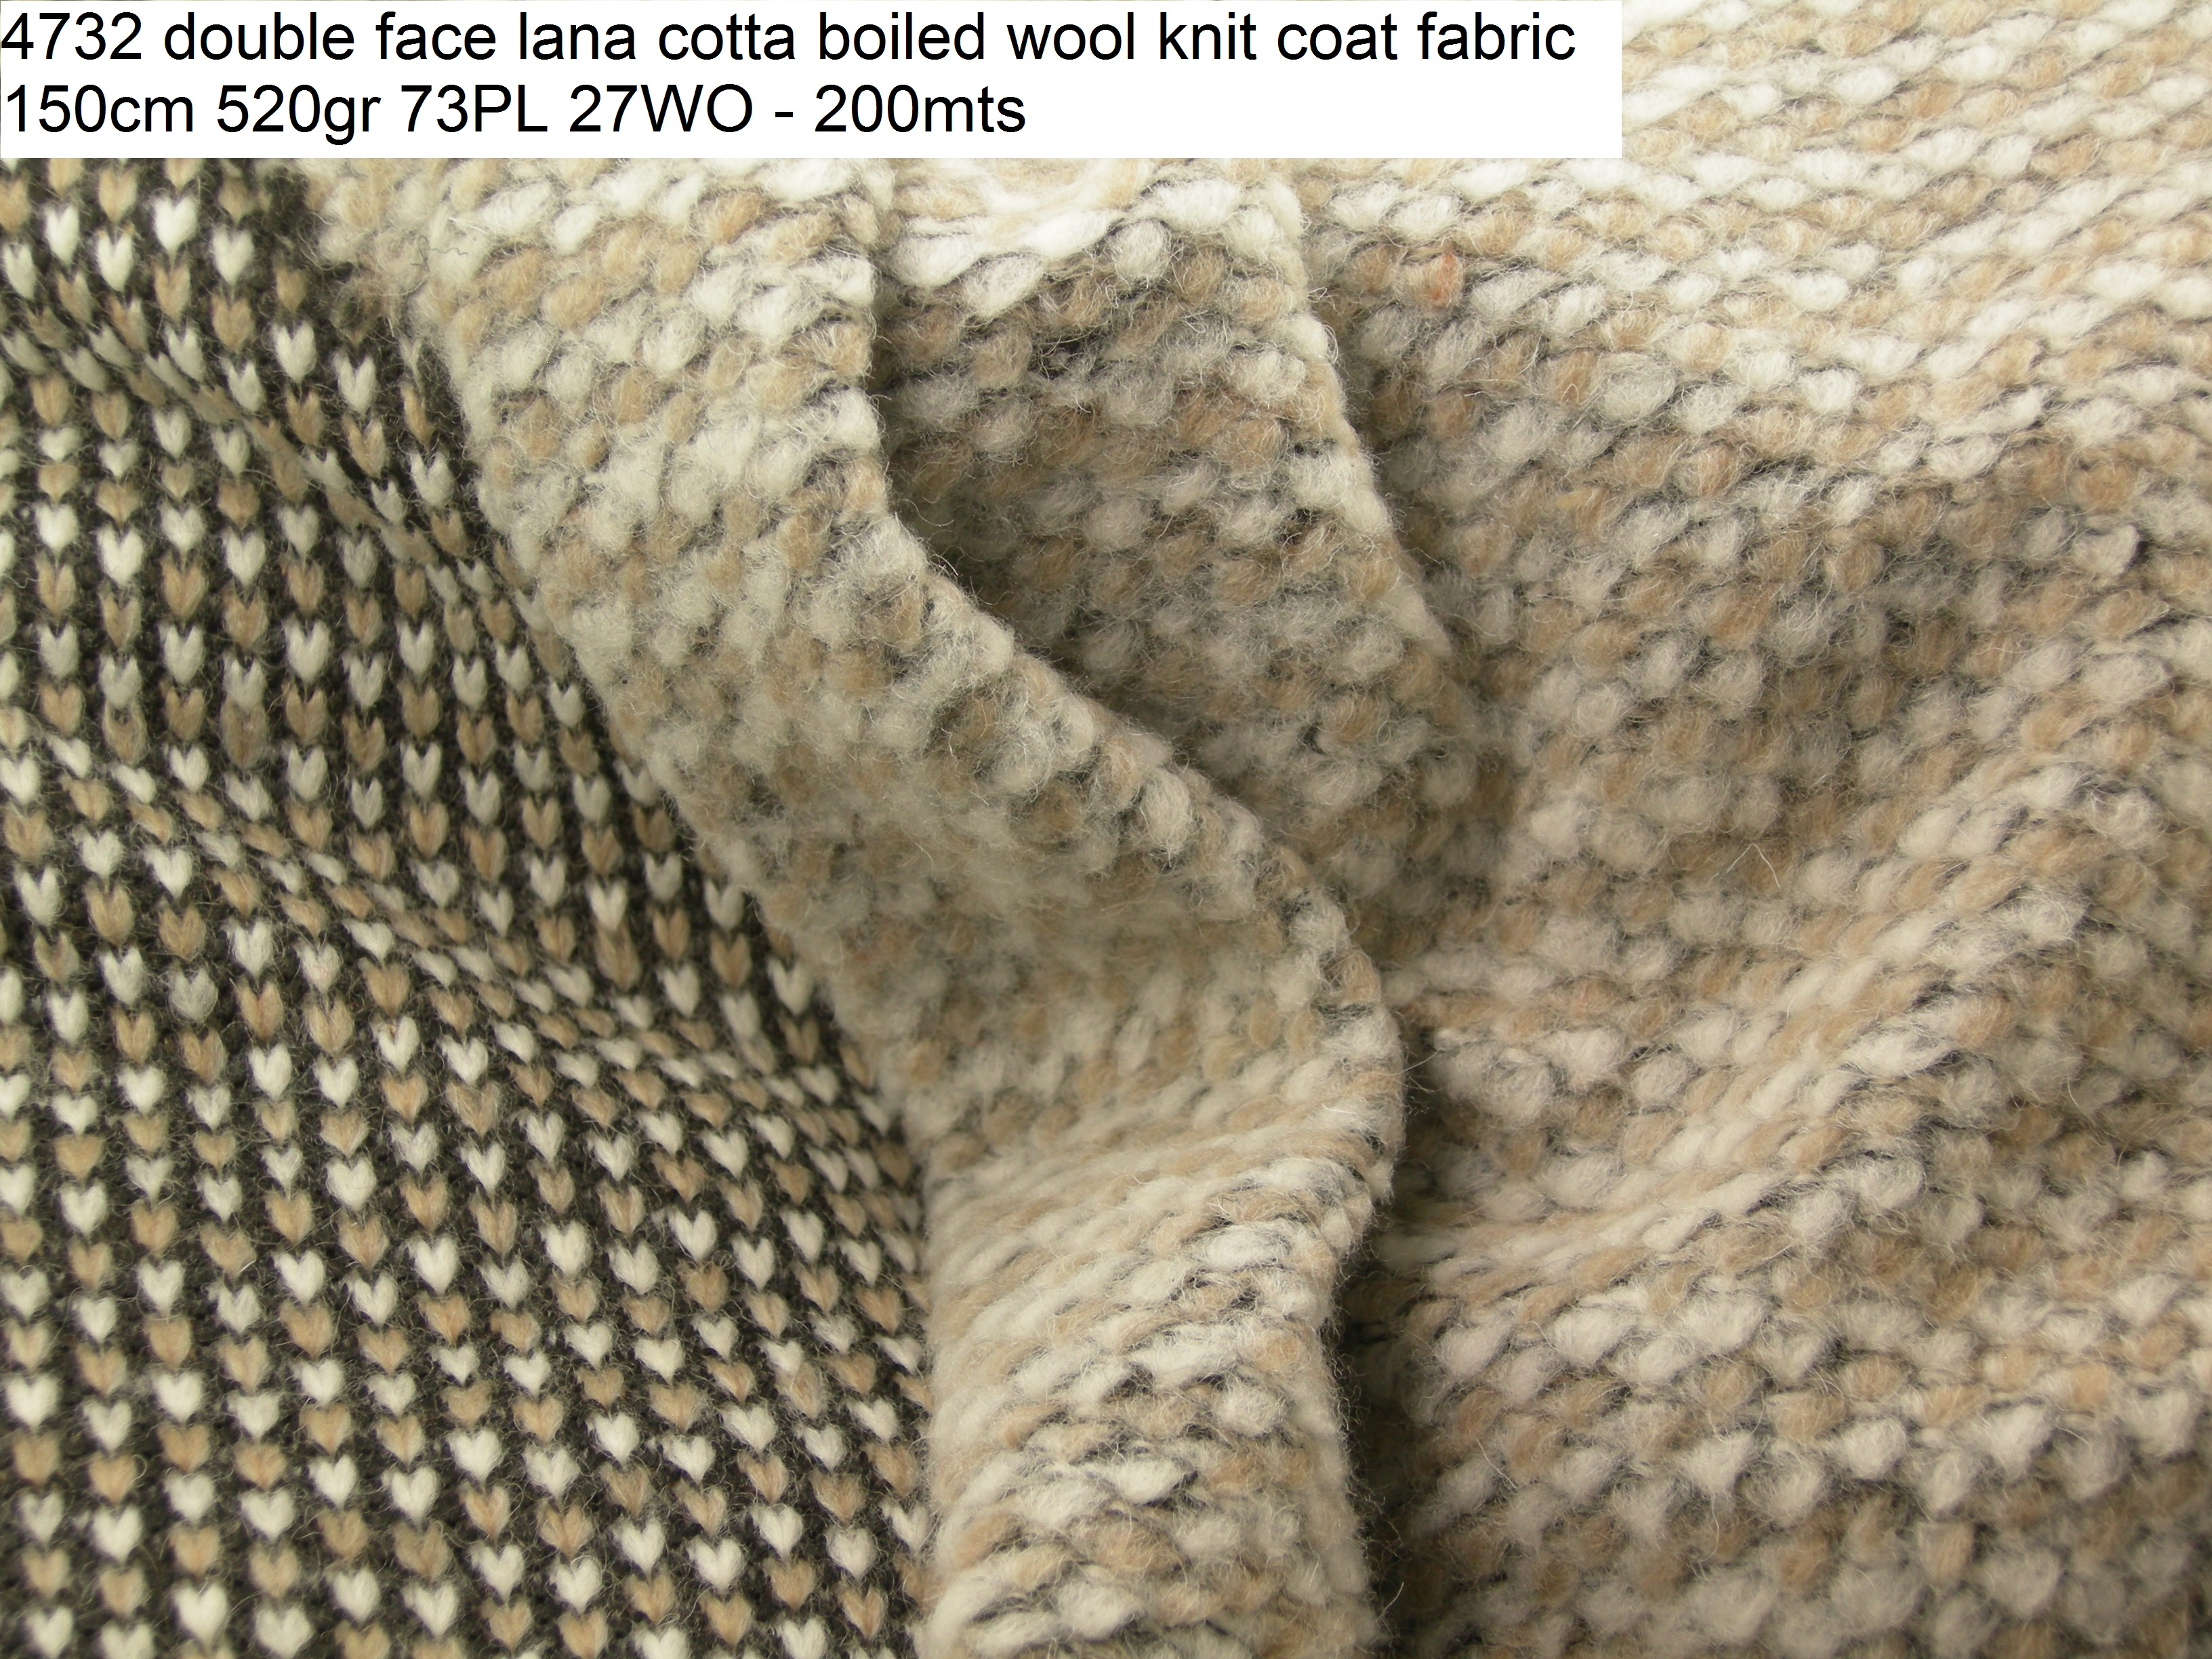 4732 double face lana cotta boiled wool knit coat fabric 150cm 520gr 73PL 27WO - 200mts